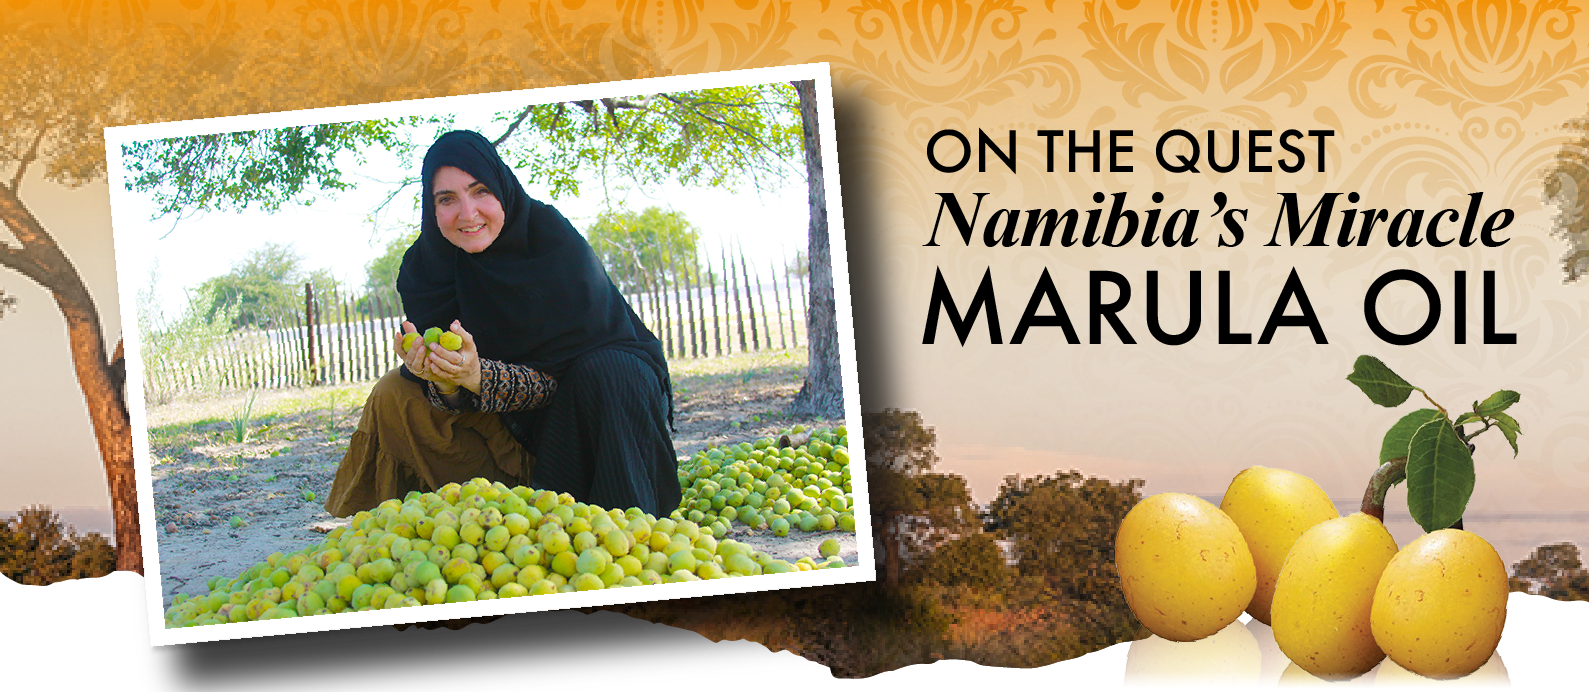 On The Quest - Namibia's Miracle Marula Oil